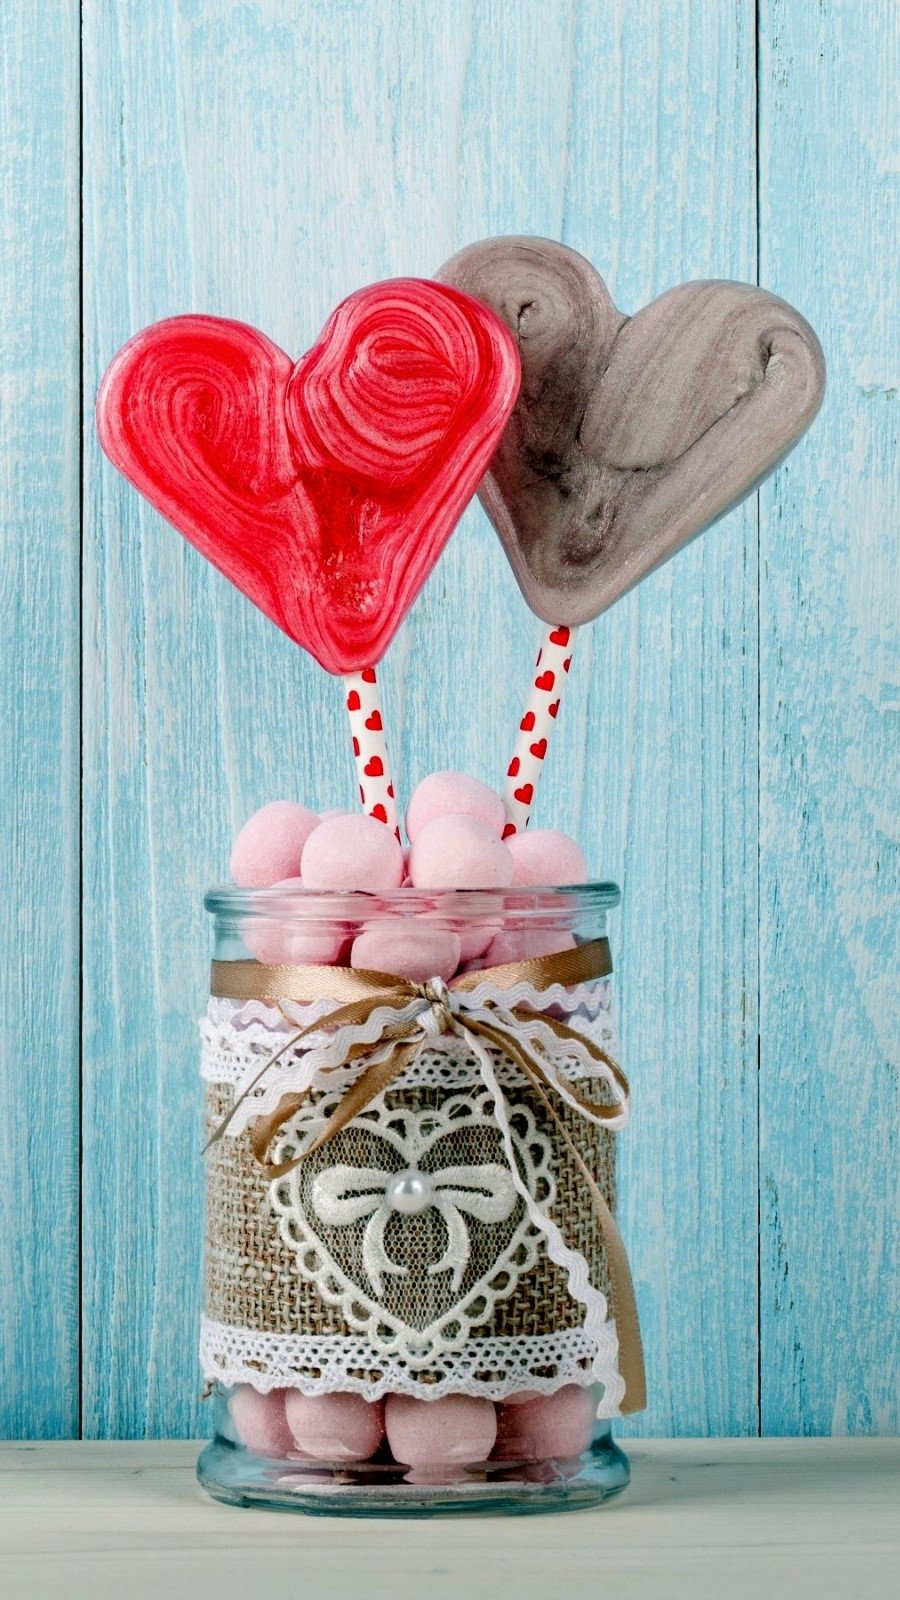 Wallpaper Heart candy in a jar Vertical